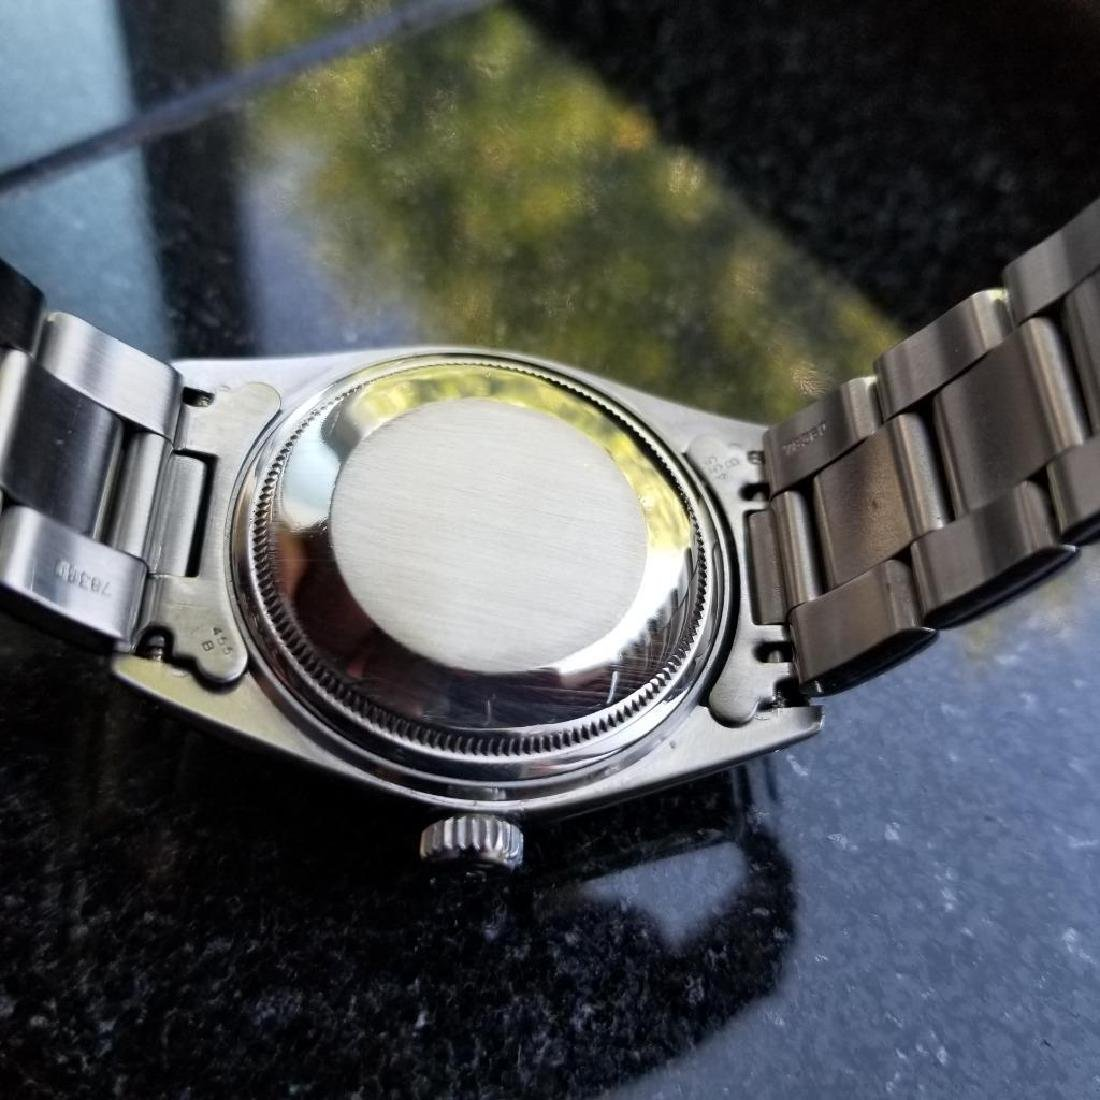 Rolex Oyster Perpetual 1603 Datejust Vintage 1977 Auto - 8